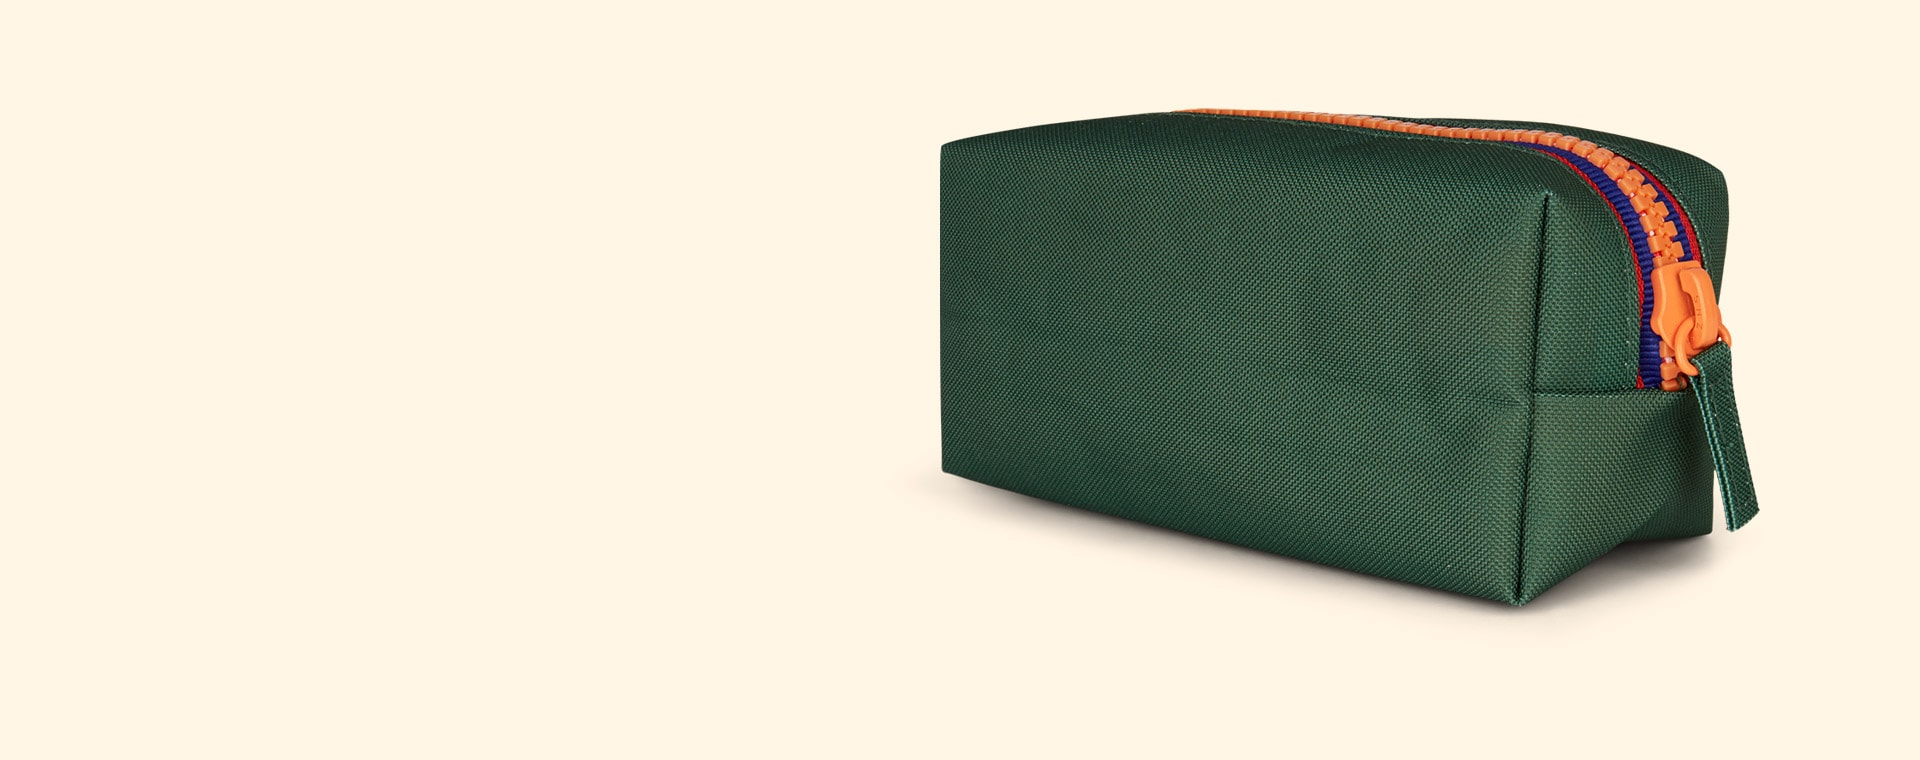 Green Engel Pencil Case